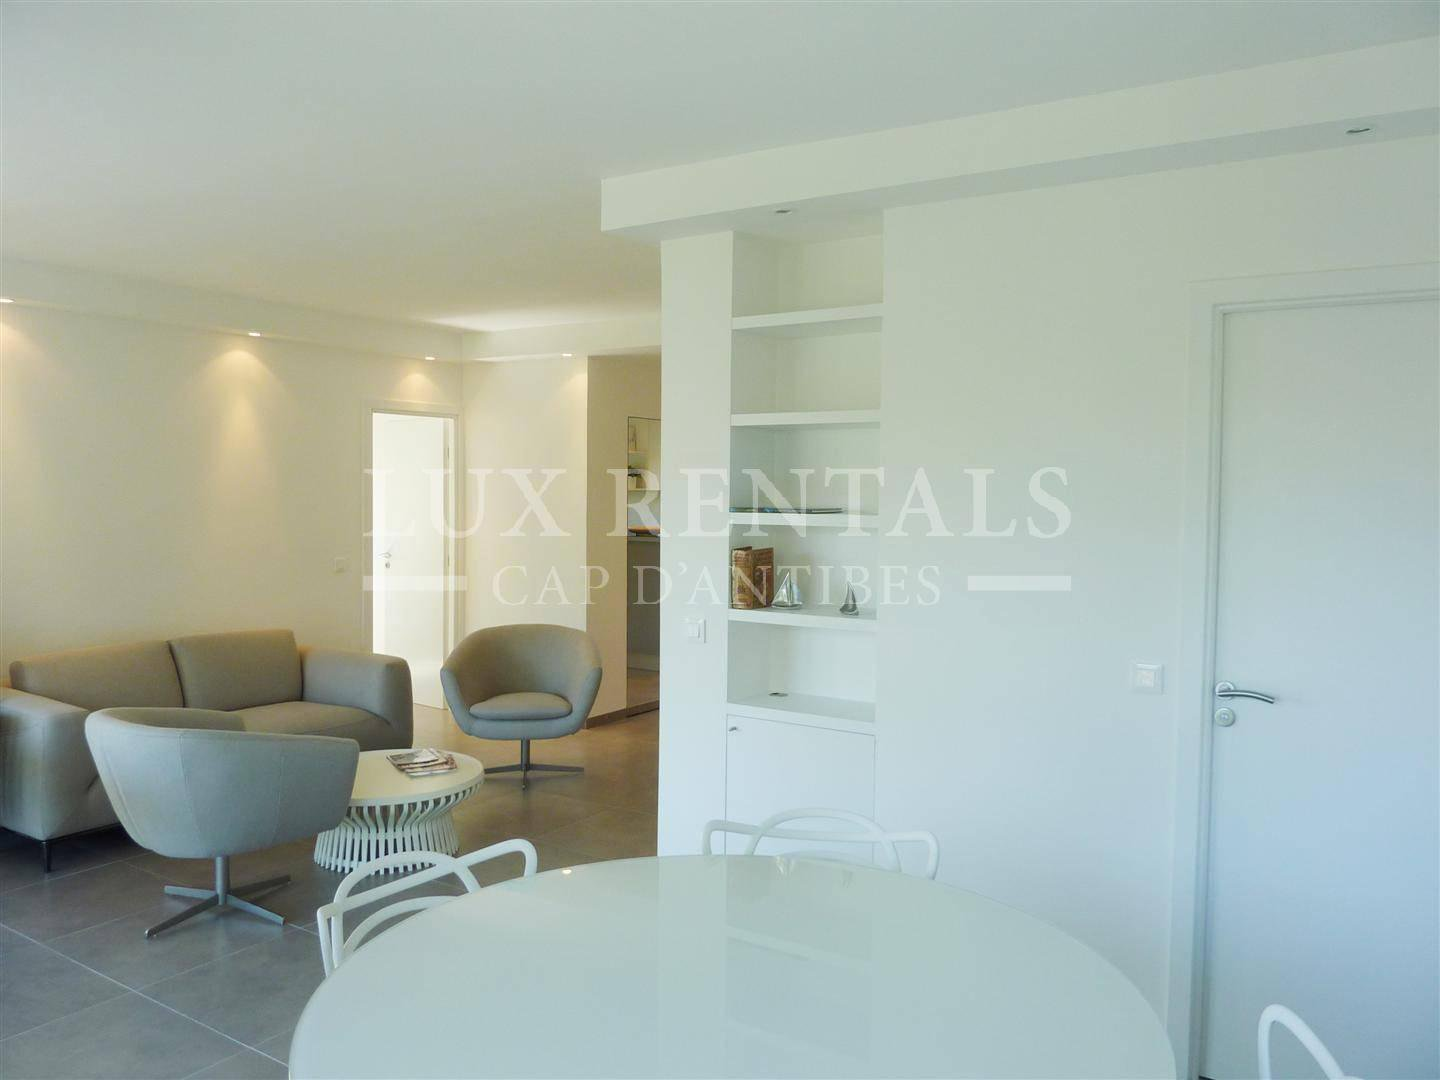 Seasonal rental Apartment - Cap d'Antibes